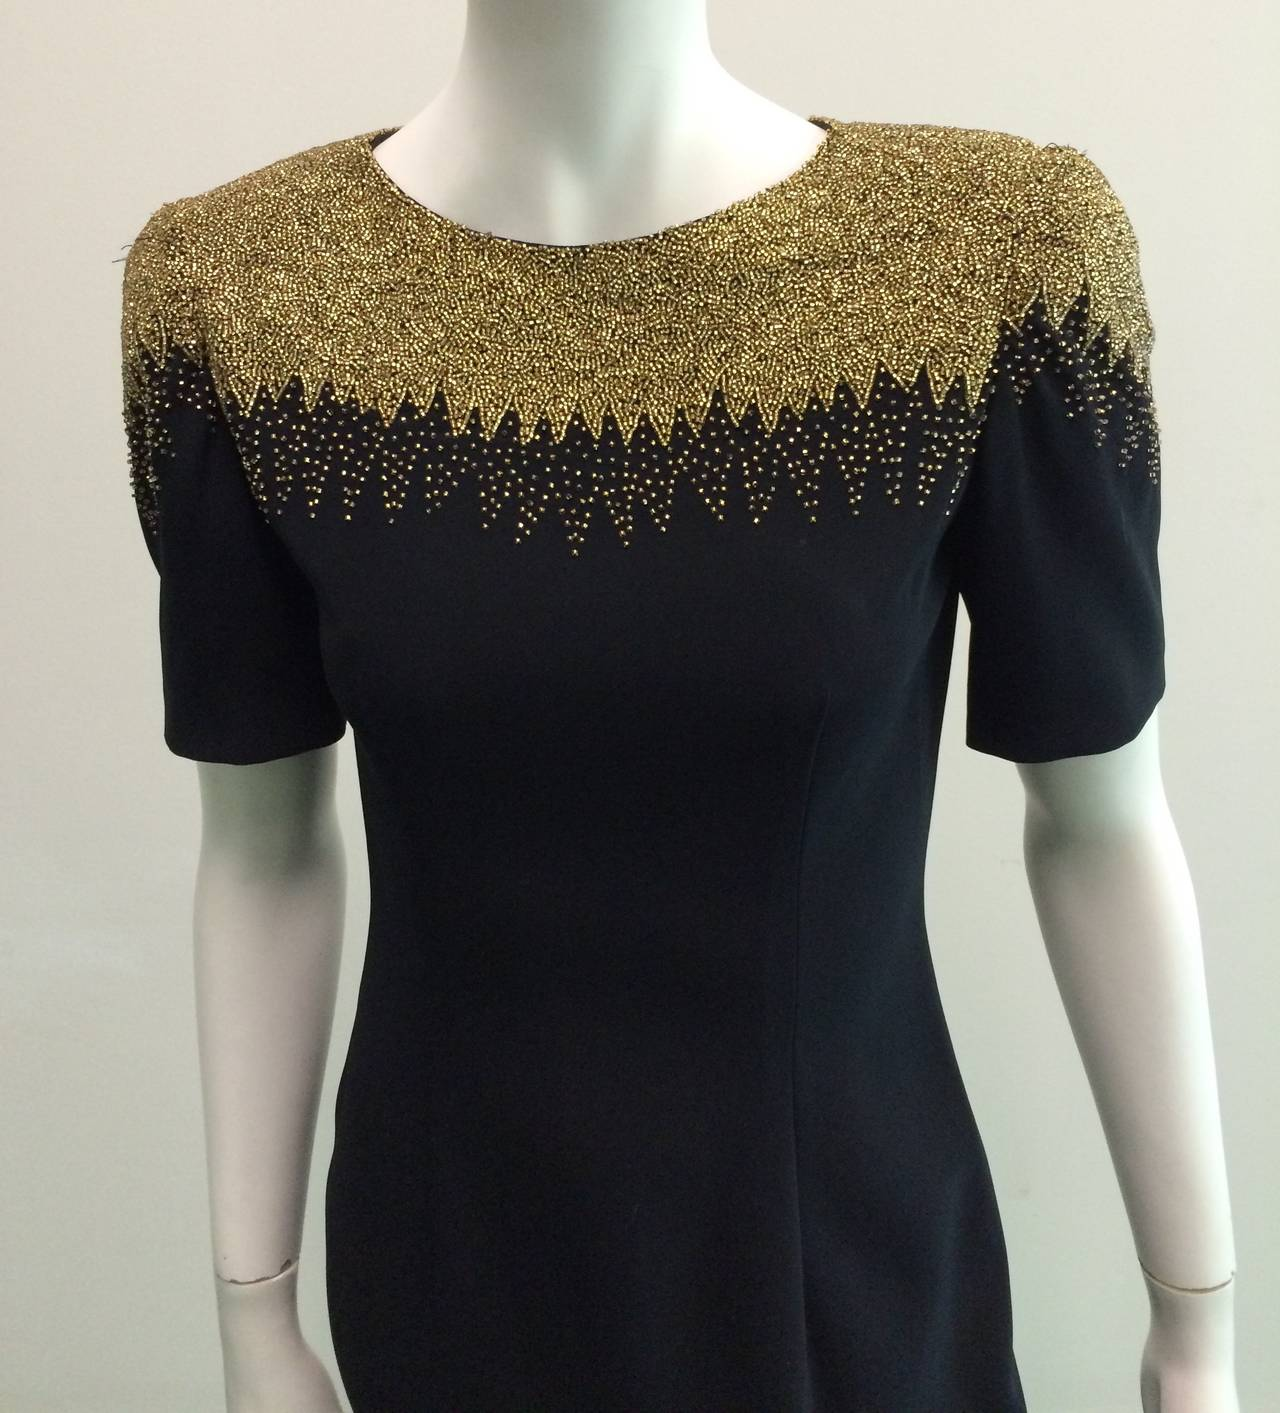 Oleg Cassini Black Tie for Bergdorf Goodman 80s beaded dress size 4. 2